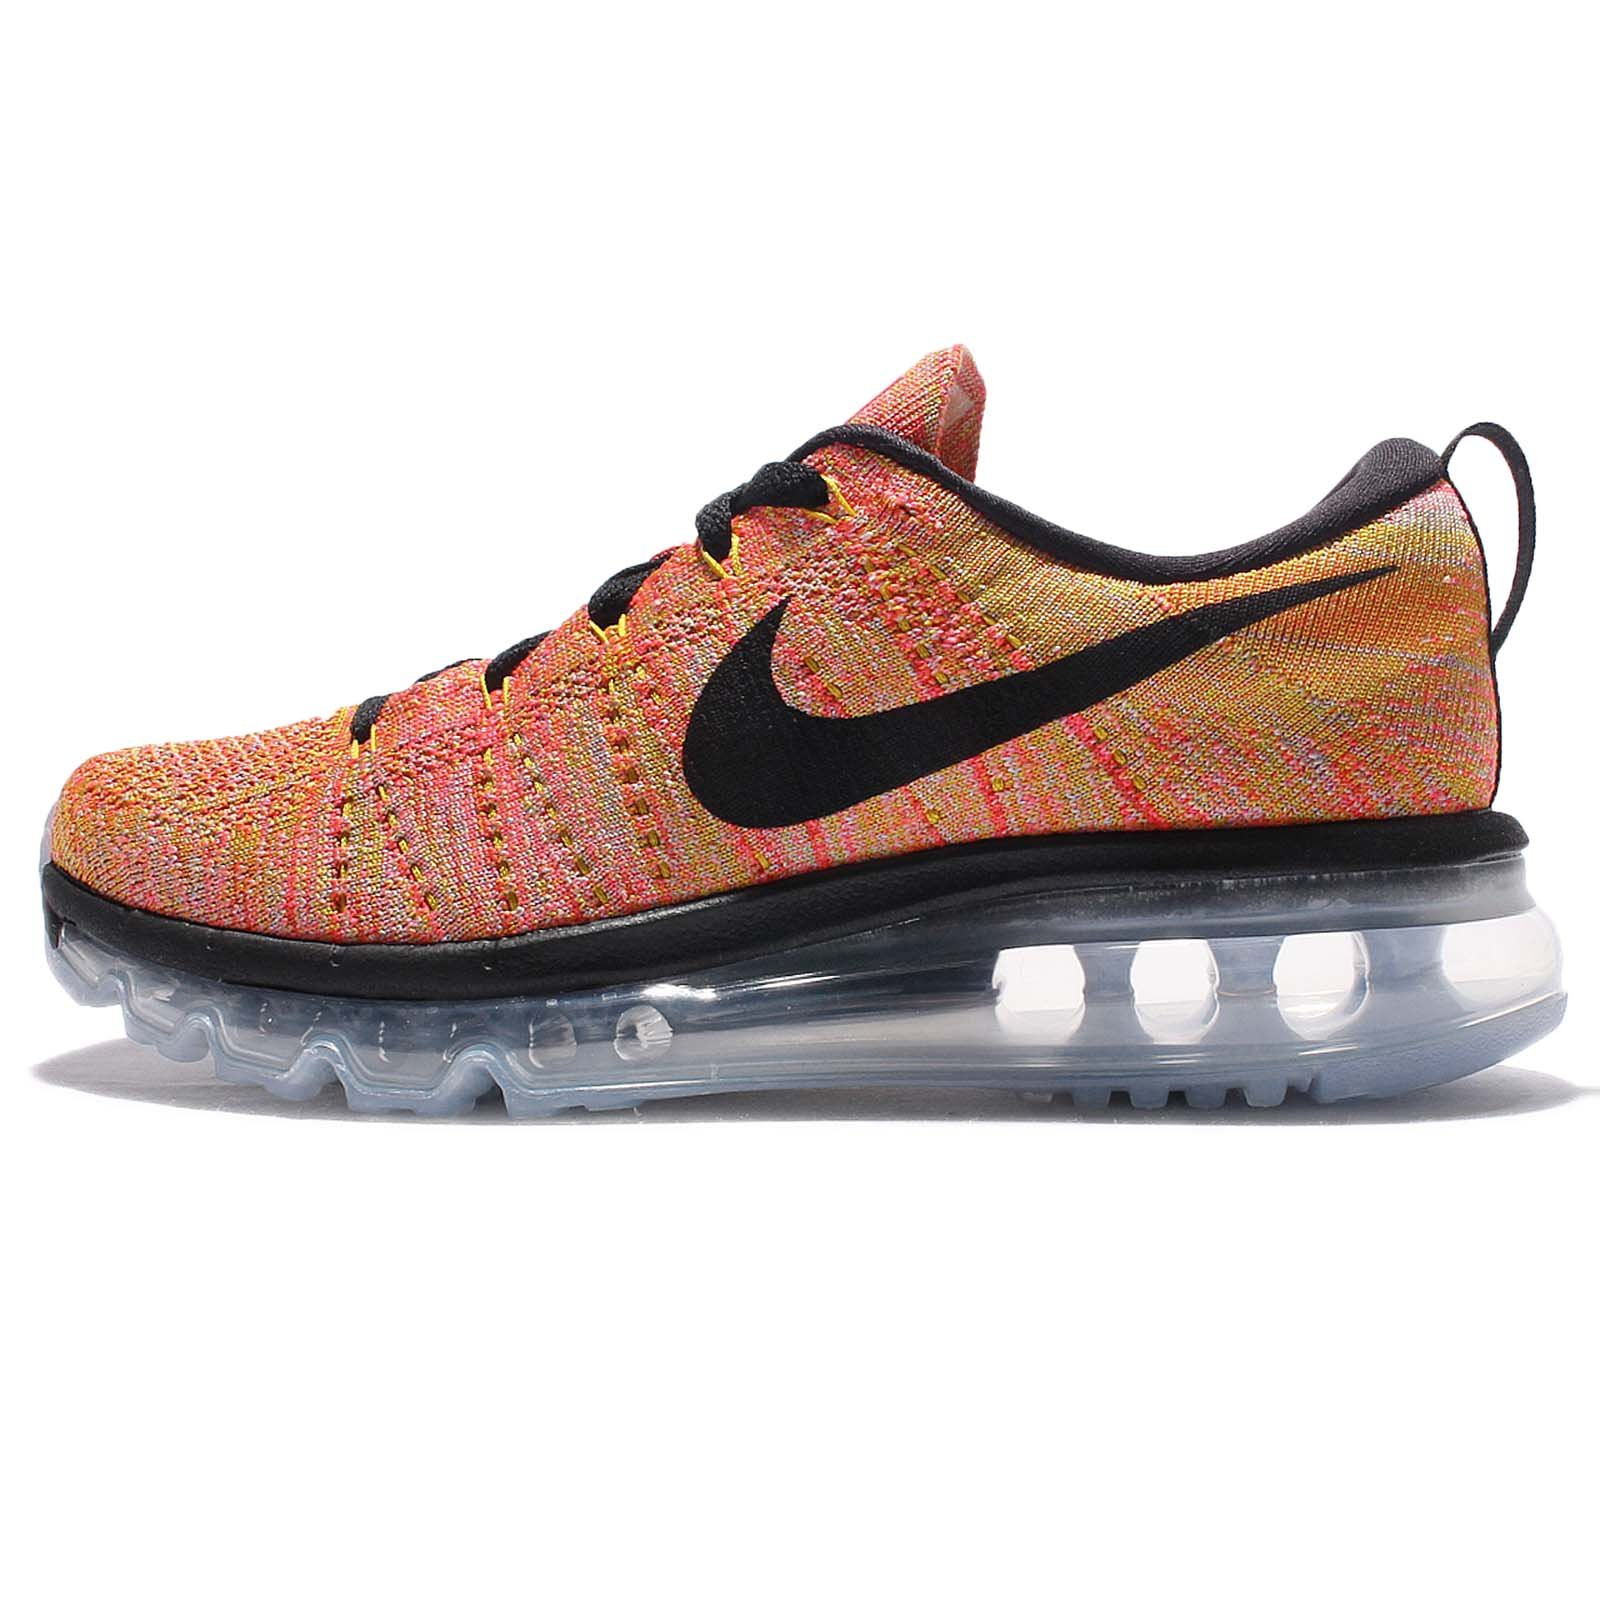 d1a268e5d7 Galleon - Nike Flyknit Air Max Womens Running Trainers 620659 Sneakers Shoes  (5.5 M US, Black)